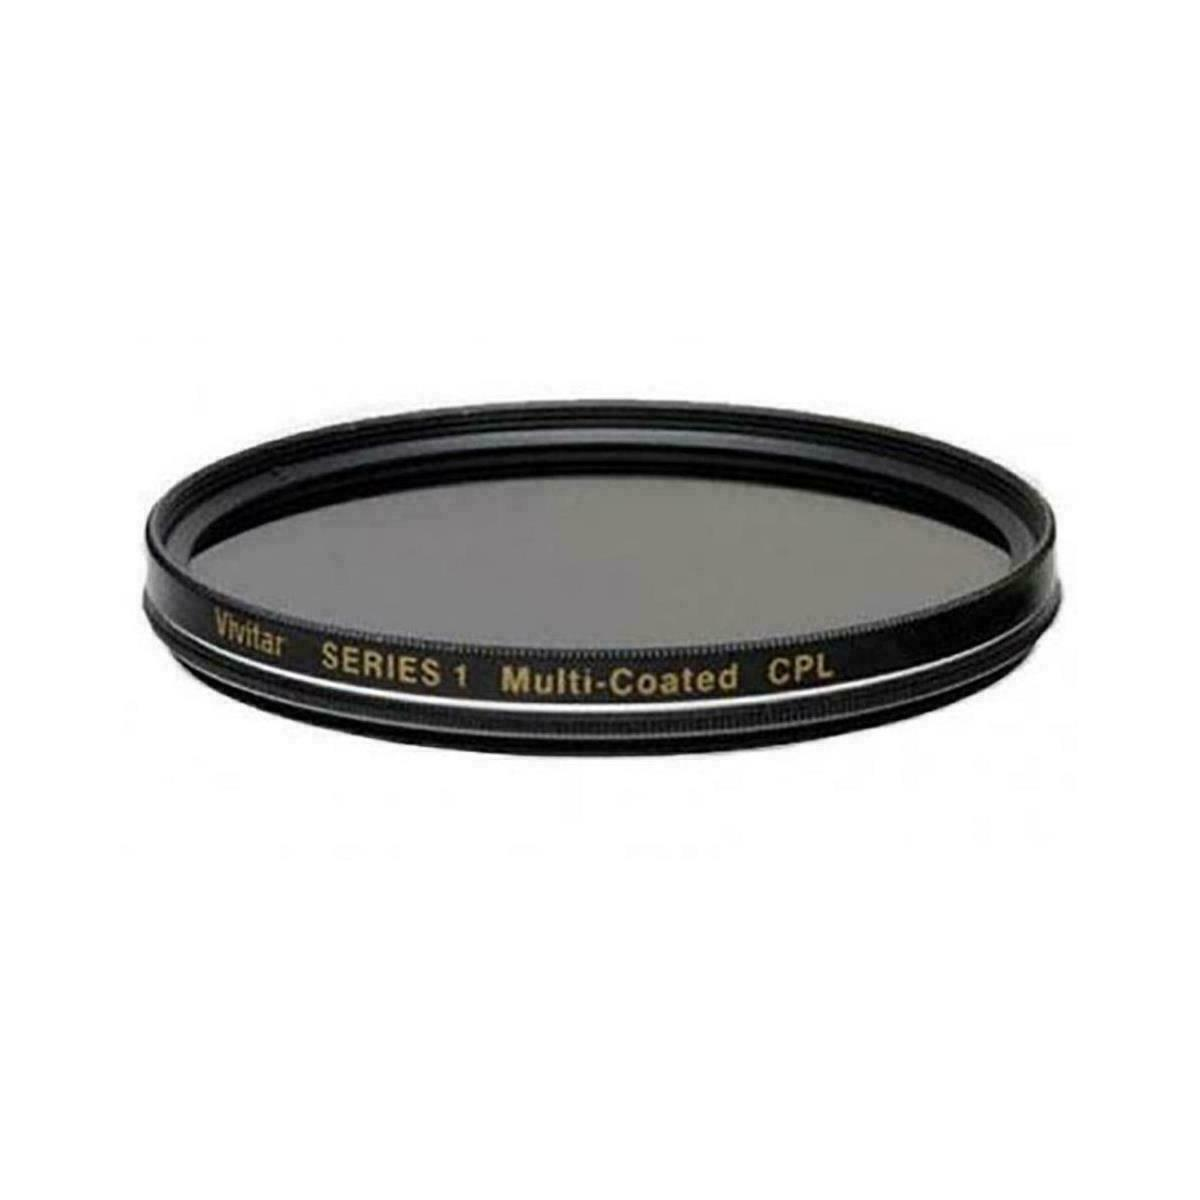 Primary image for Vivitar CPL Circular Polarizer Multicoated Glass Filter 55mm